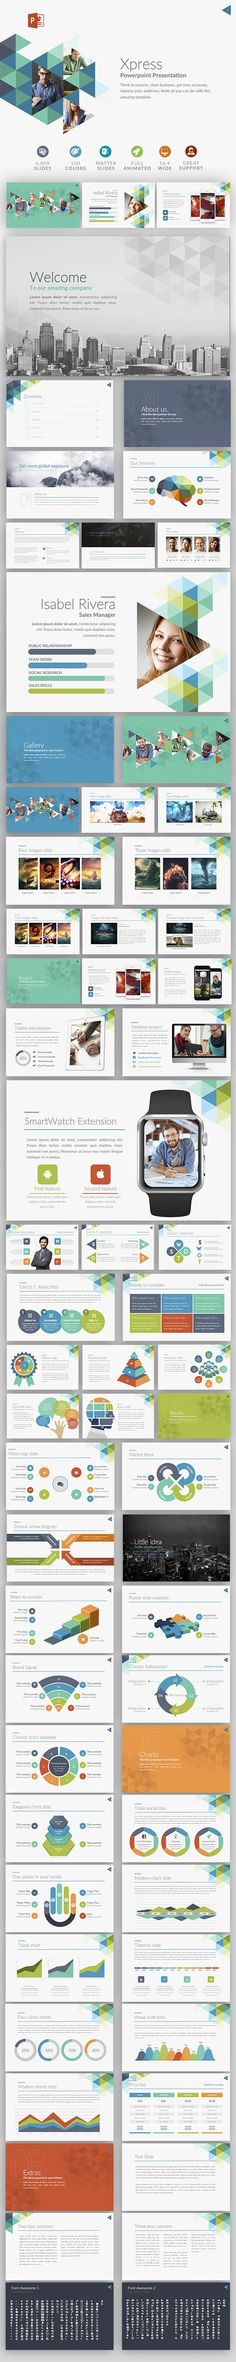 Xpress - Powerpoint Template. Download here: http://graphicriver.net/item/xpress-powerpoint-template/14629321?ref=ksioks: